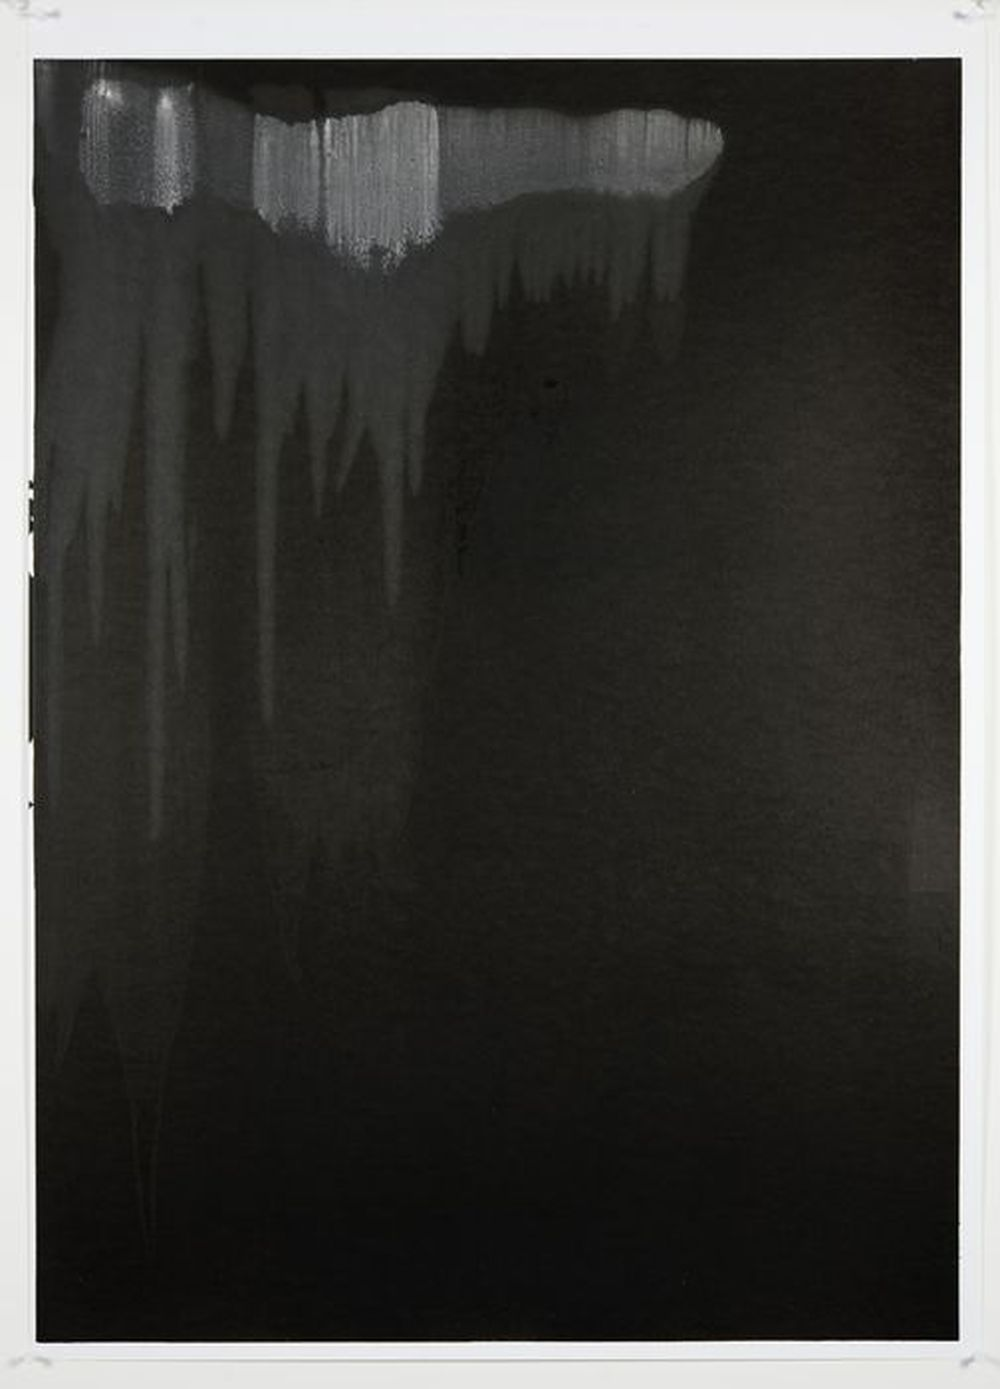 Diluting Black , Monotype On Cartridge Paper, 40x62cm, 2010